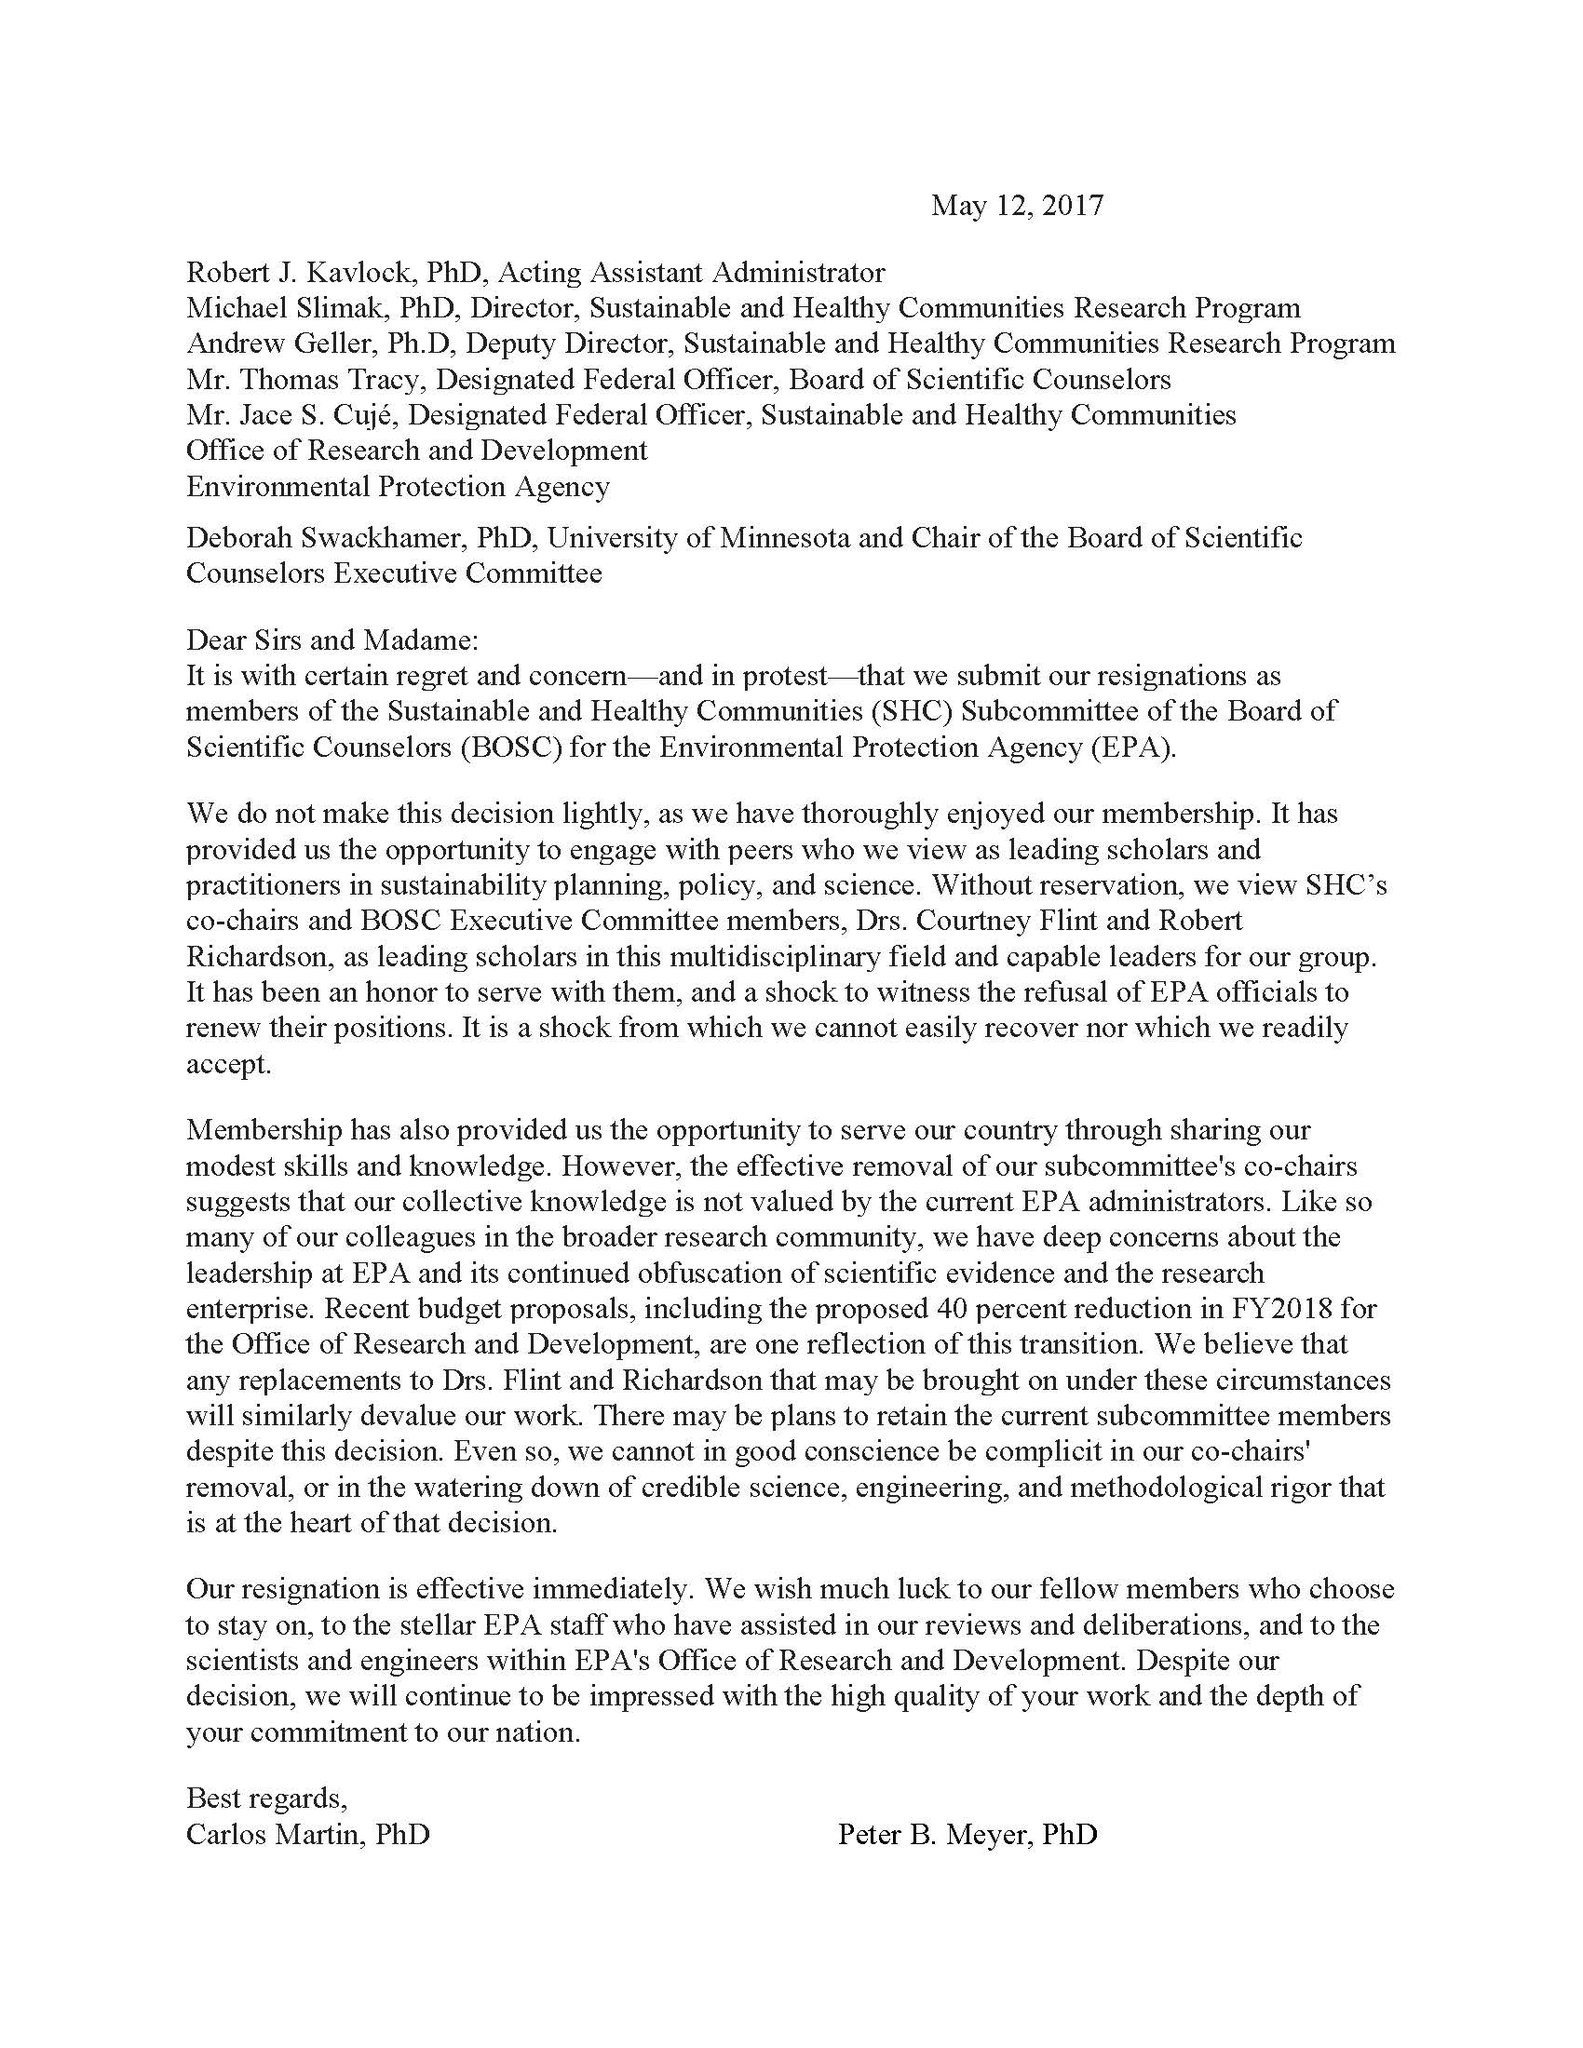 Scientists resign from epa in protest sierra club national scientists resign from epa in protest aljukfo Images